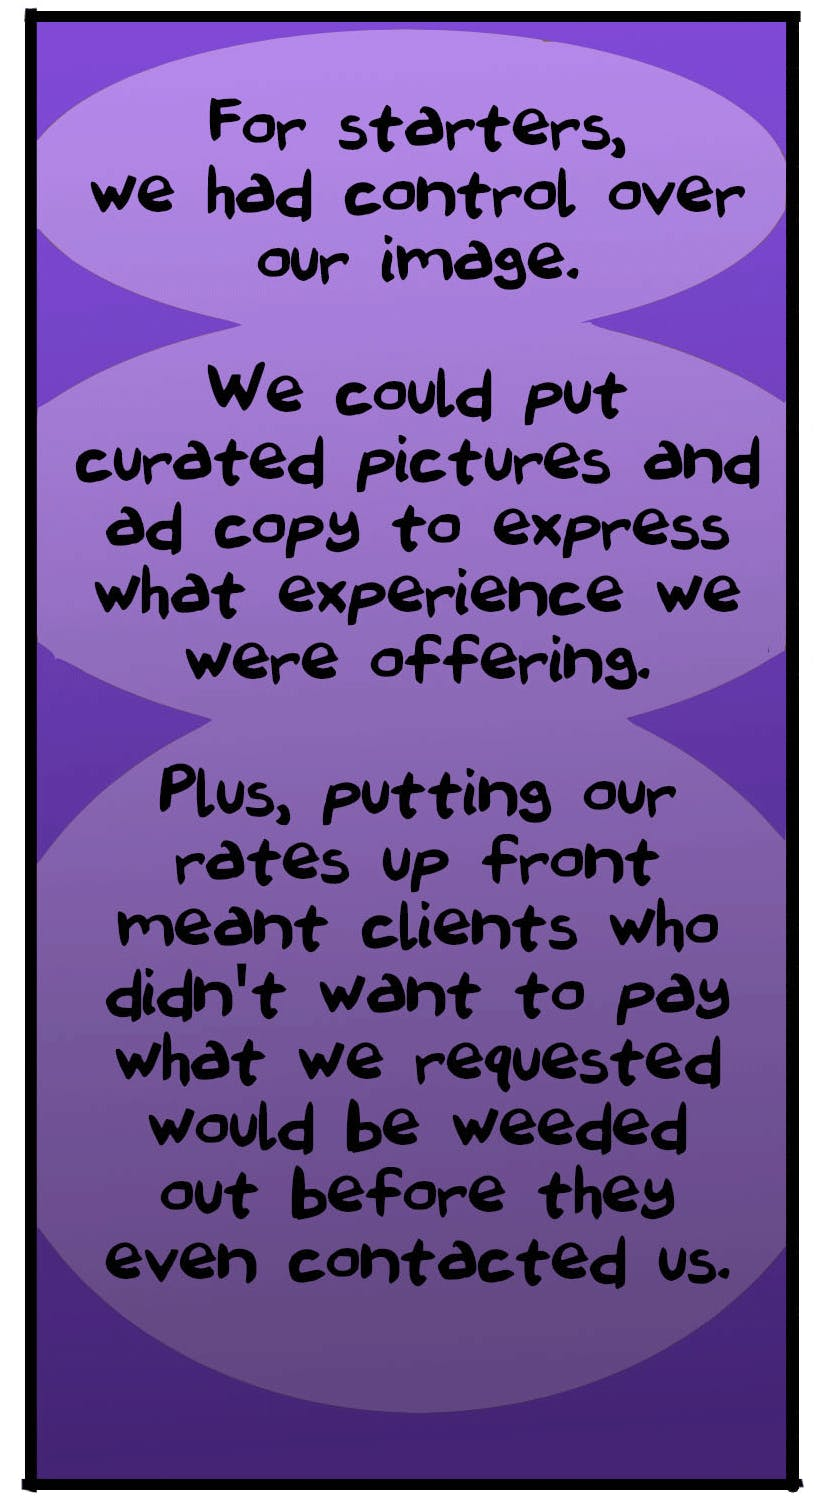 Benefits of the online classifieds website, Backpage, for adult advertisers. Image courtesy of  The Nib